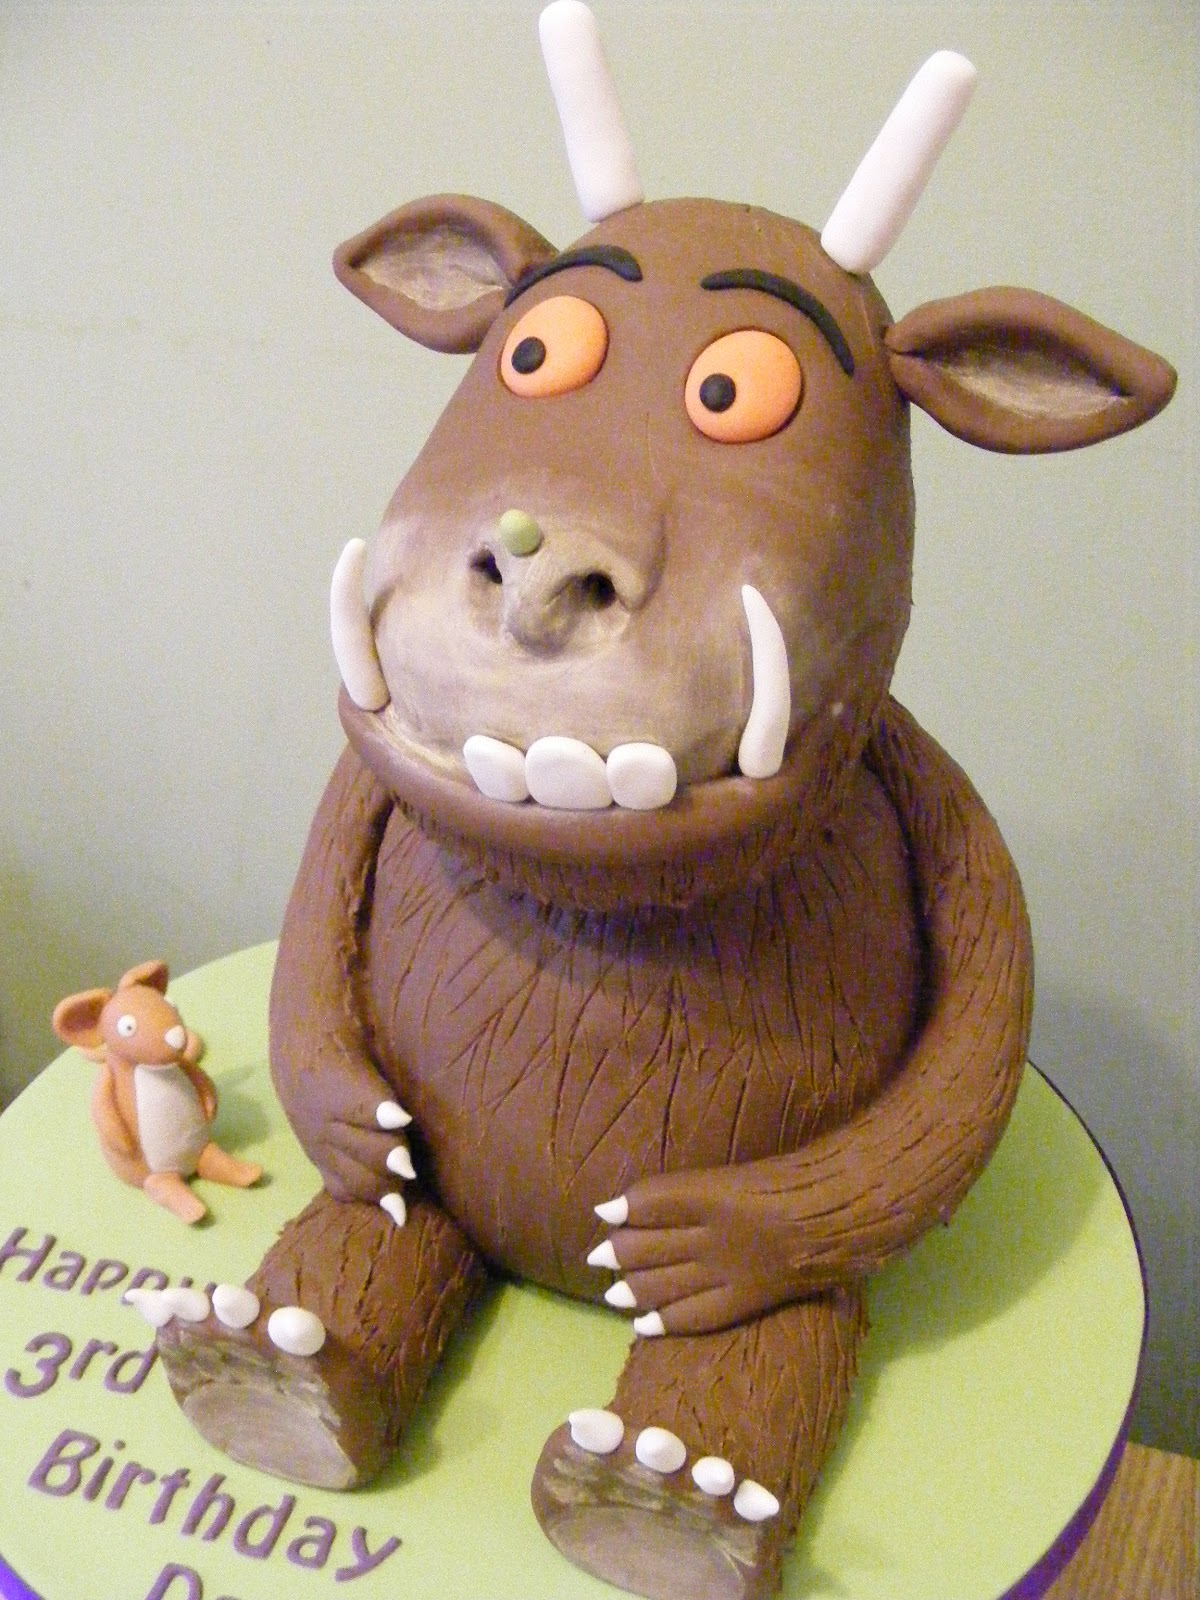 how to make a gruffalo out of fondant